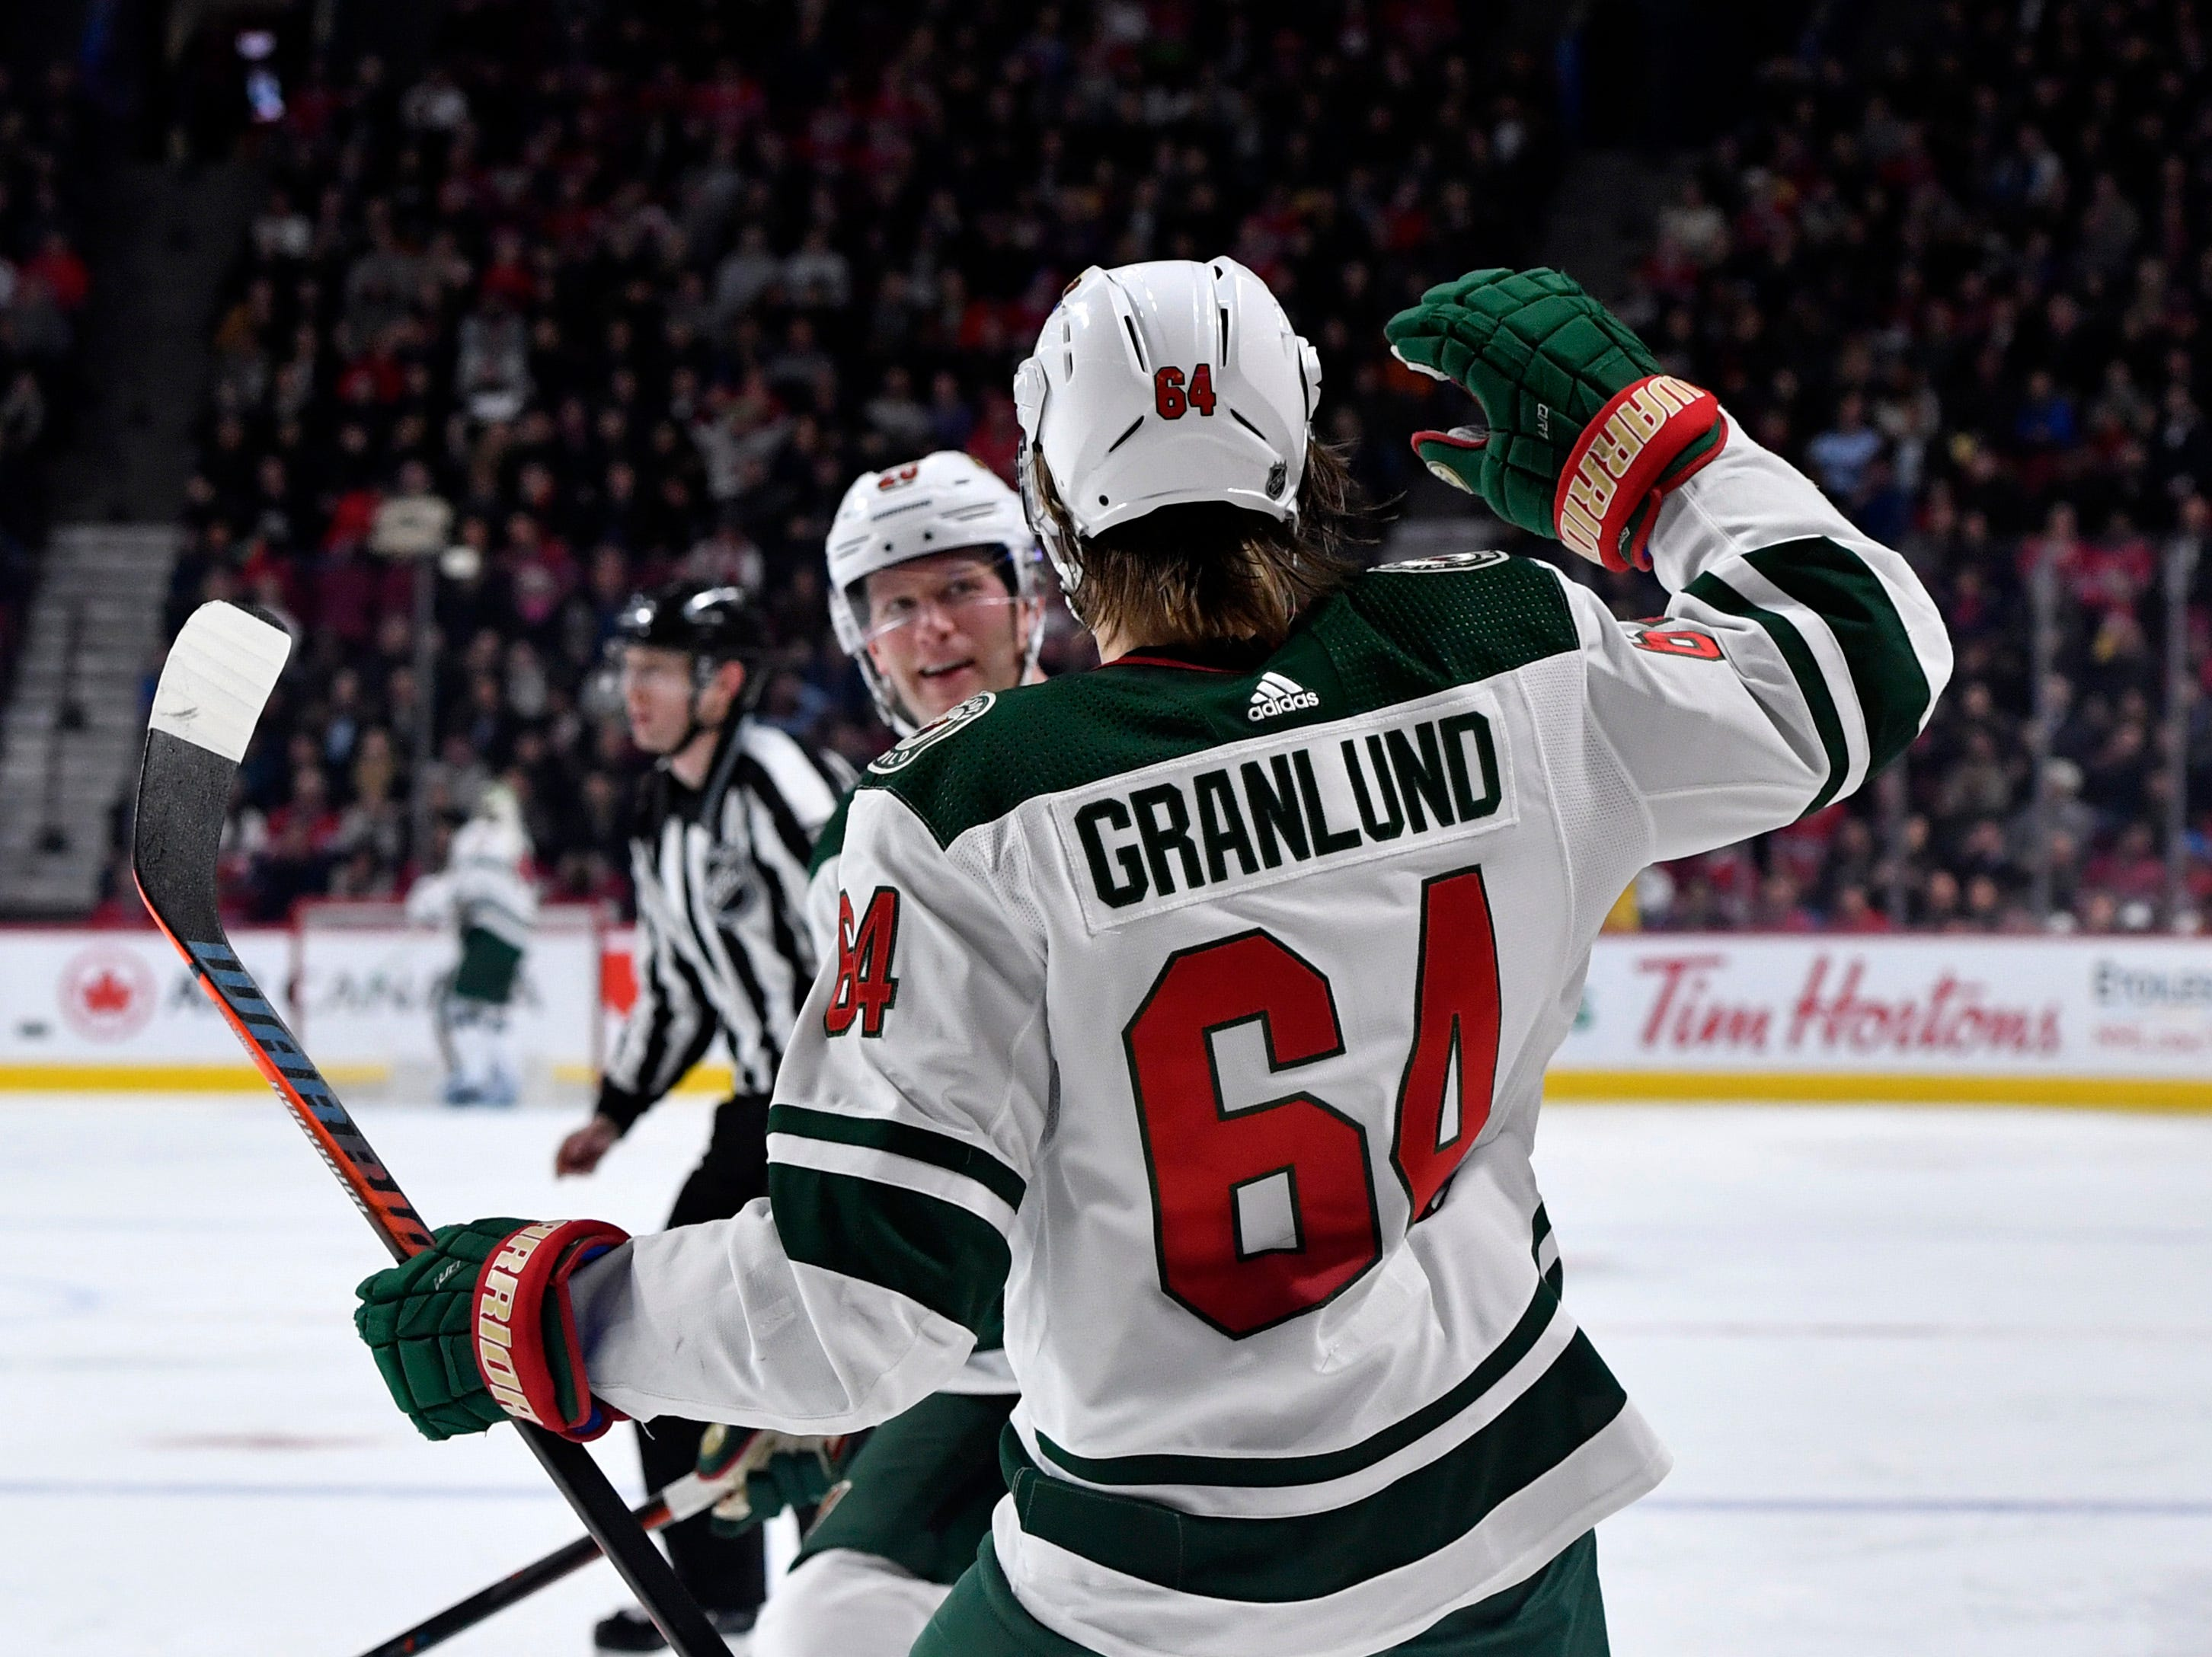 Minnesota Wild forward Mikael Granlund celebrates his goal in a 1-0 win against the Montreal Canadiens. It was his first goal since Nov. 29.